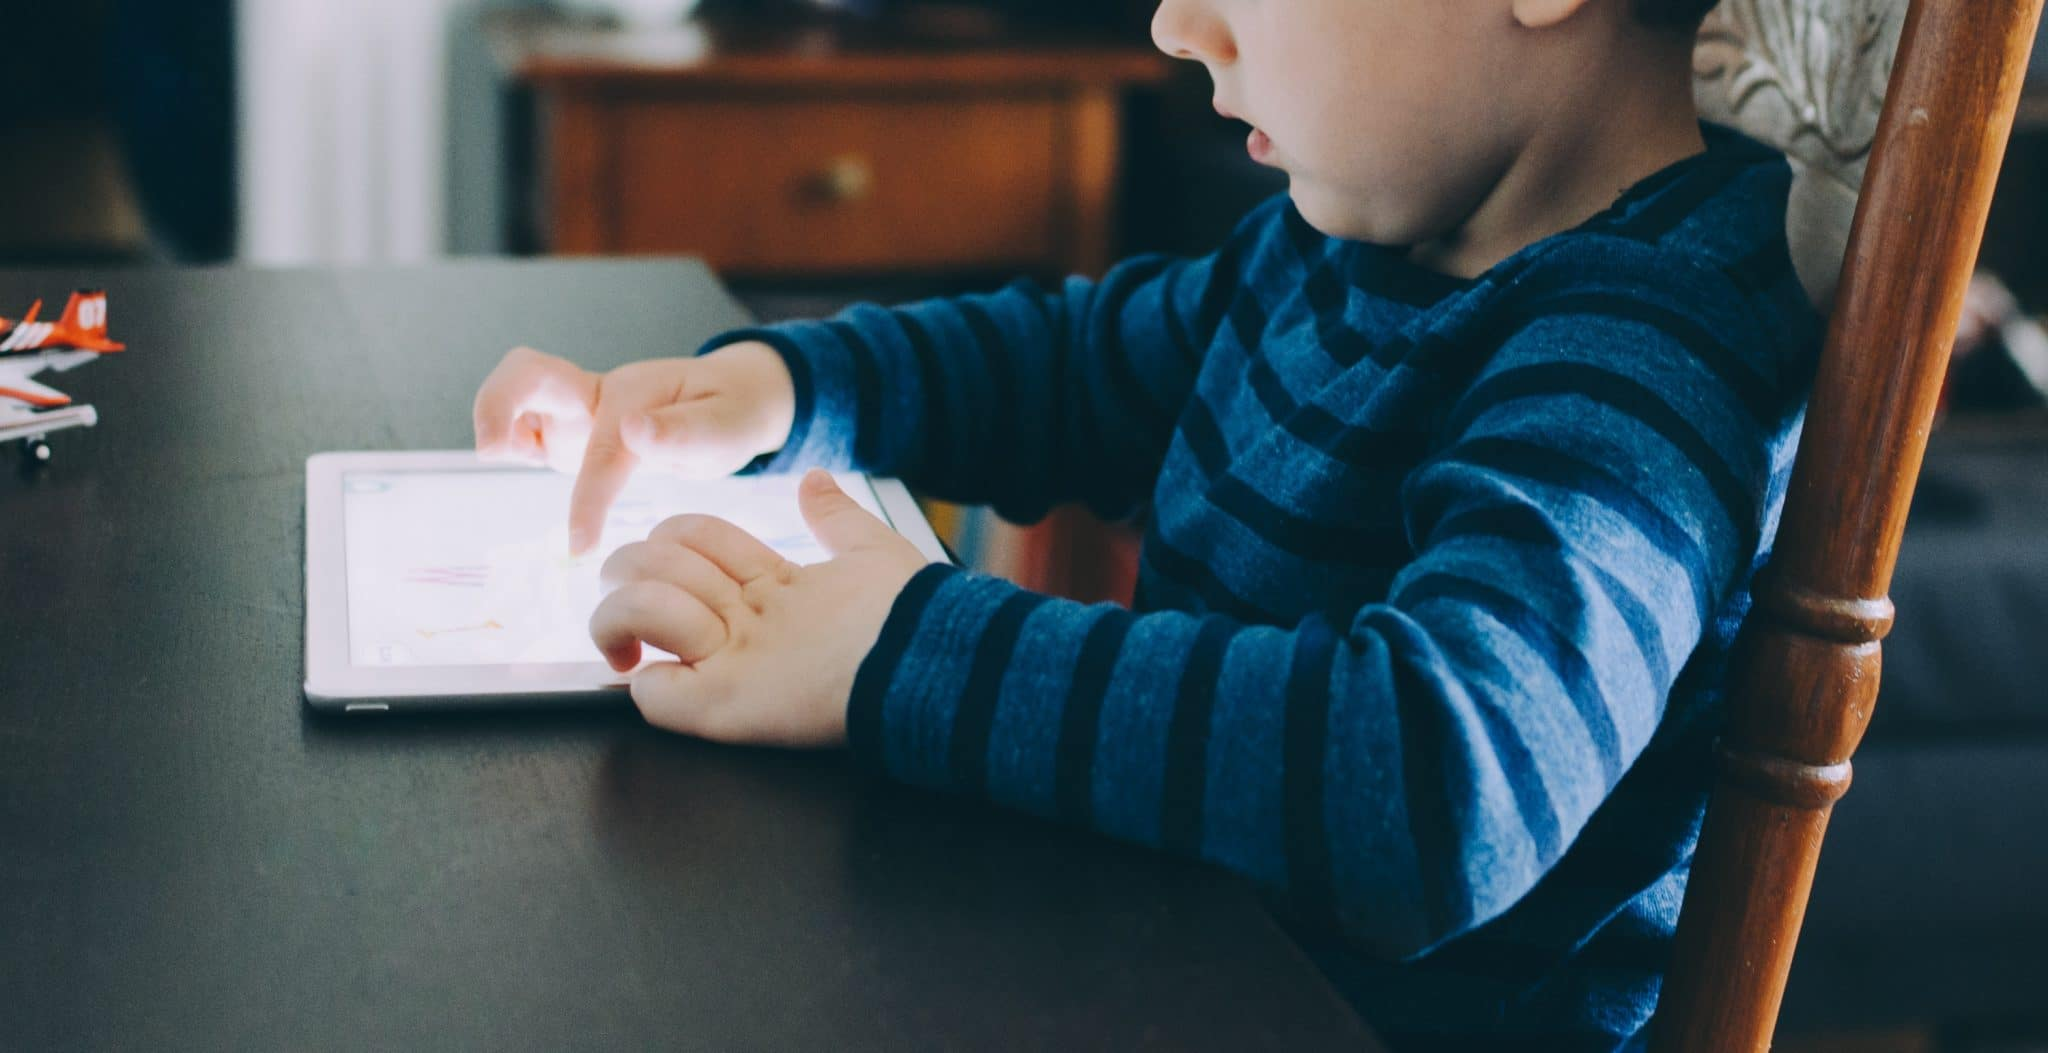 Ask The Judge: My coParent allows our son to watch scary TV. What should I do?